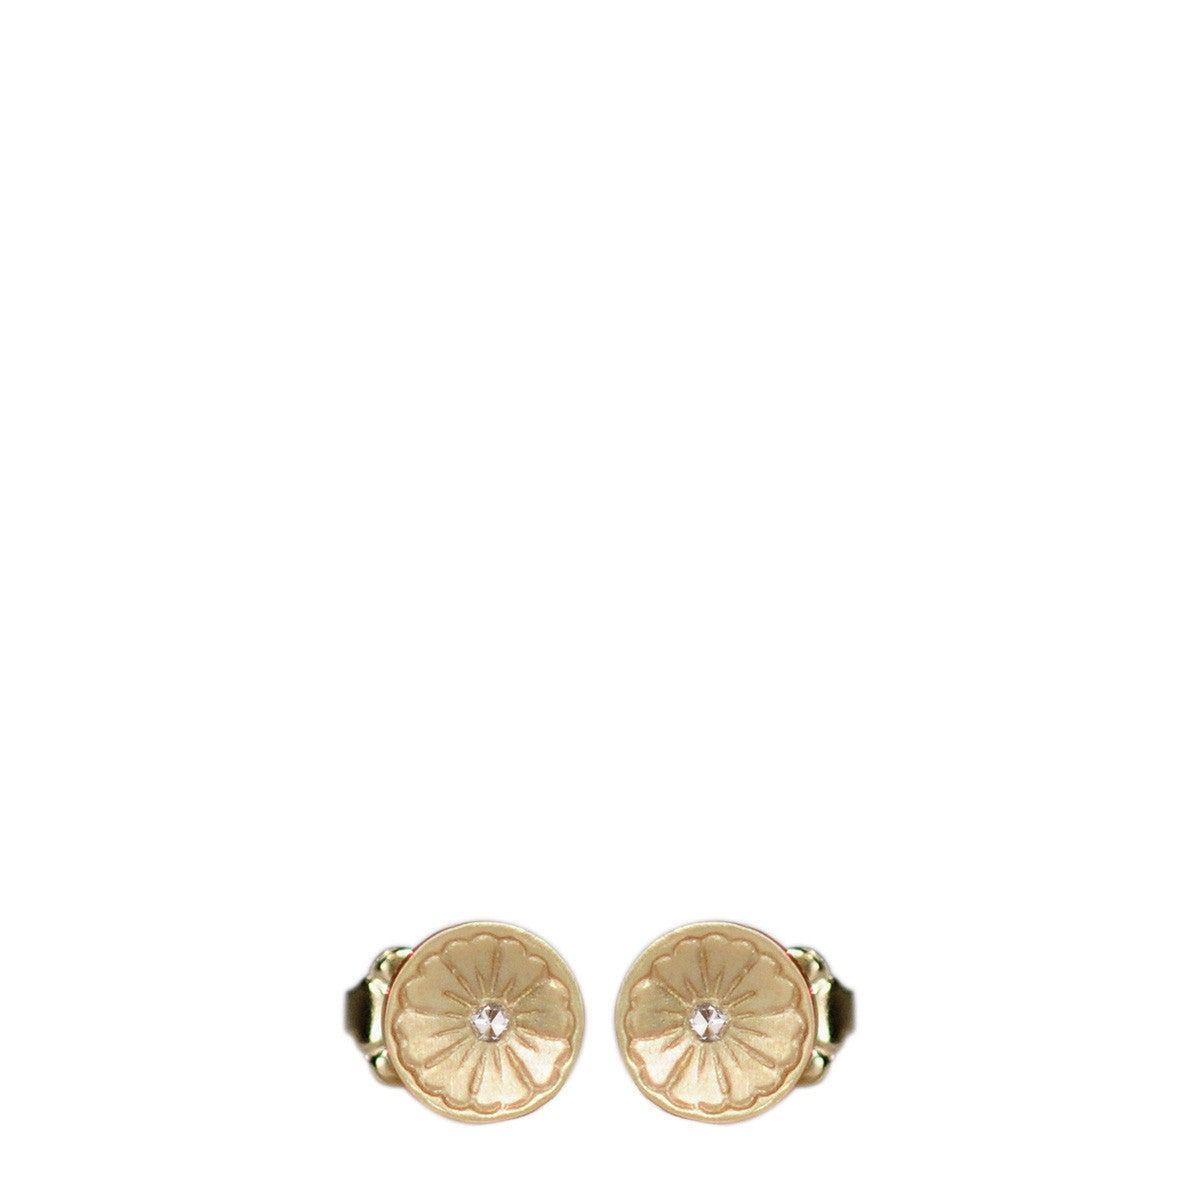 10K Gold Engraved Flower Stud Earrings with Diamonds